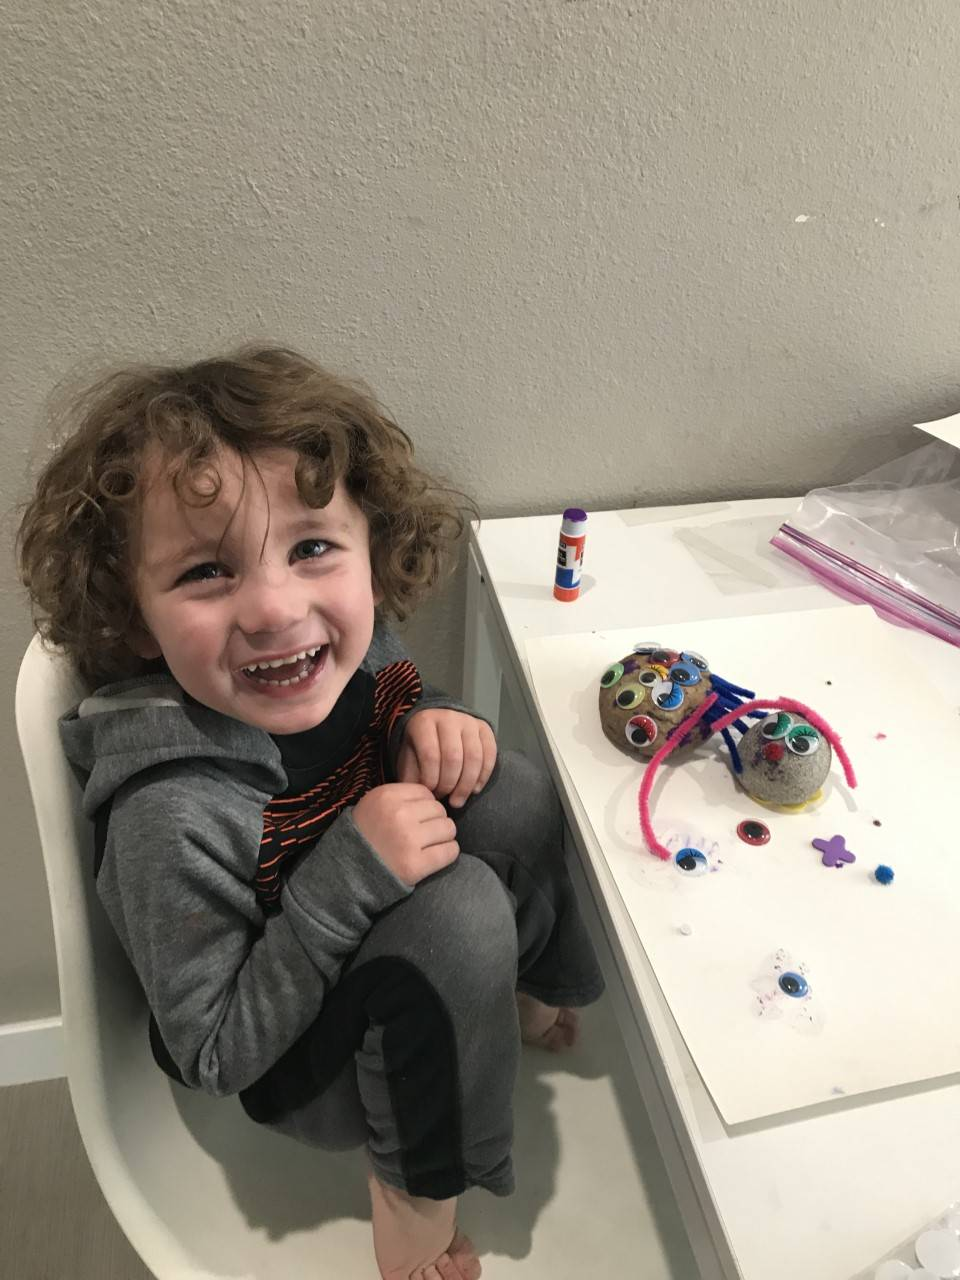 A student smiles with his pet rocks he made.